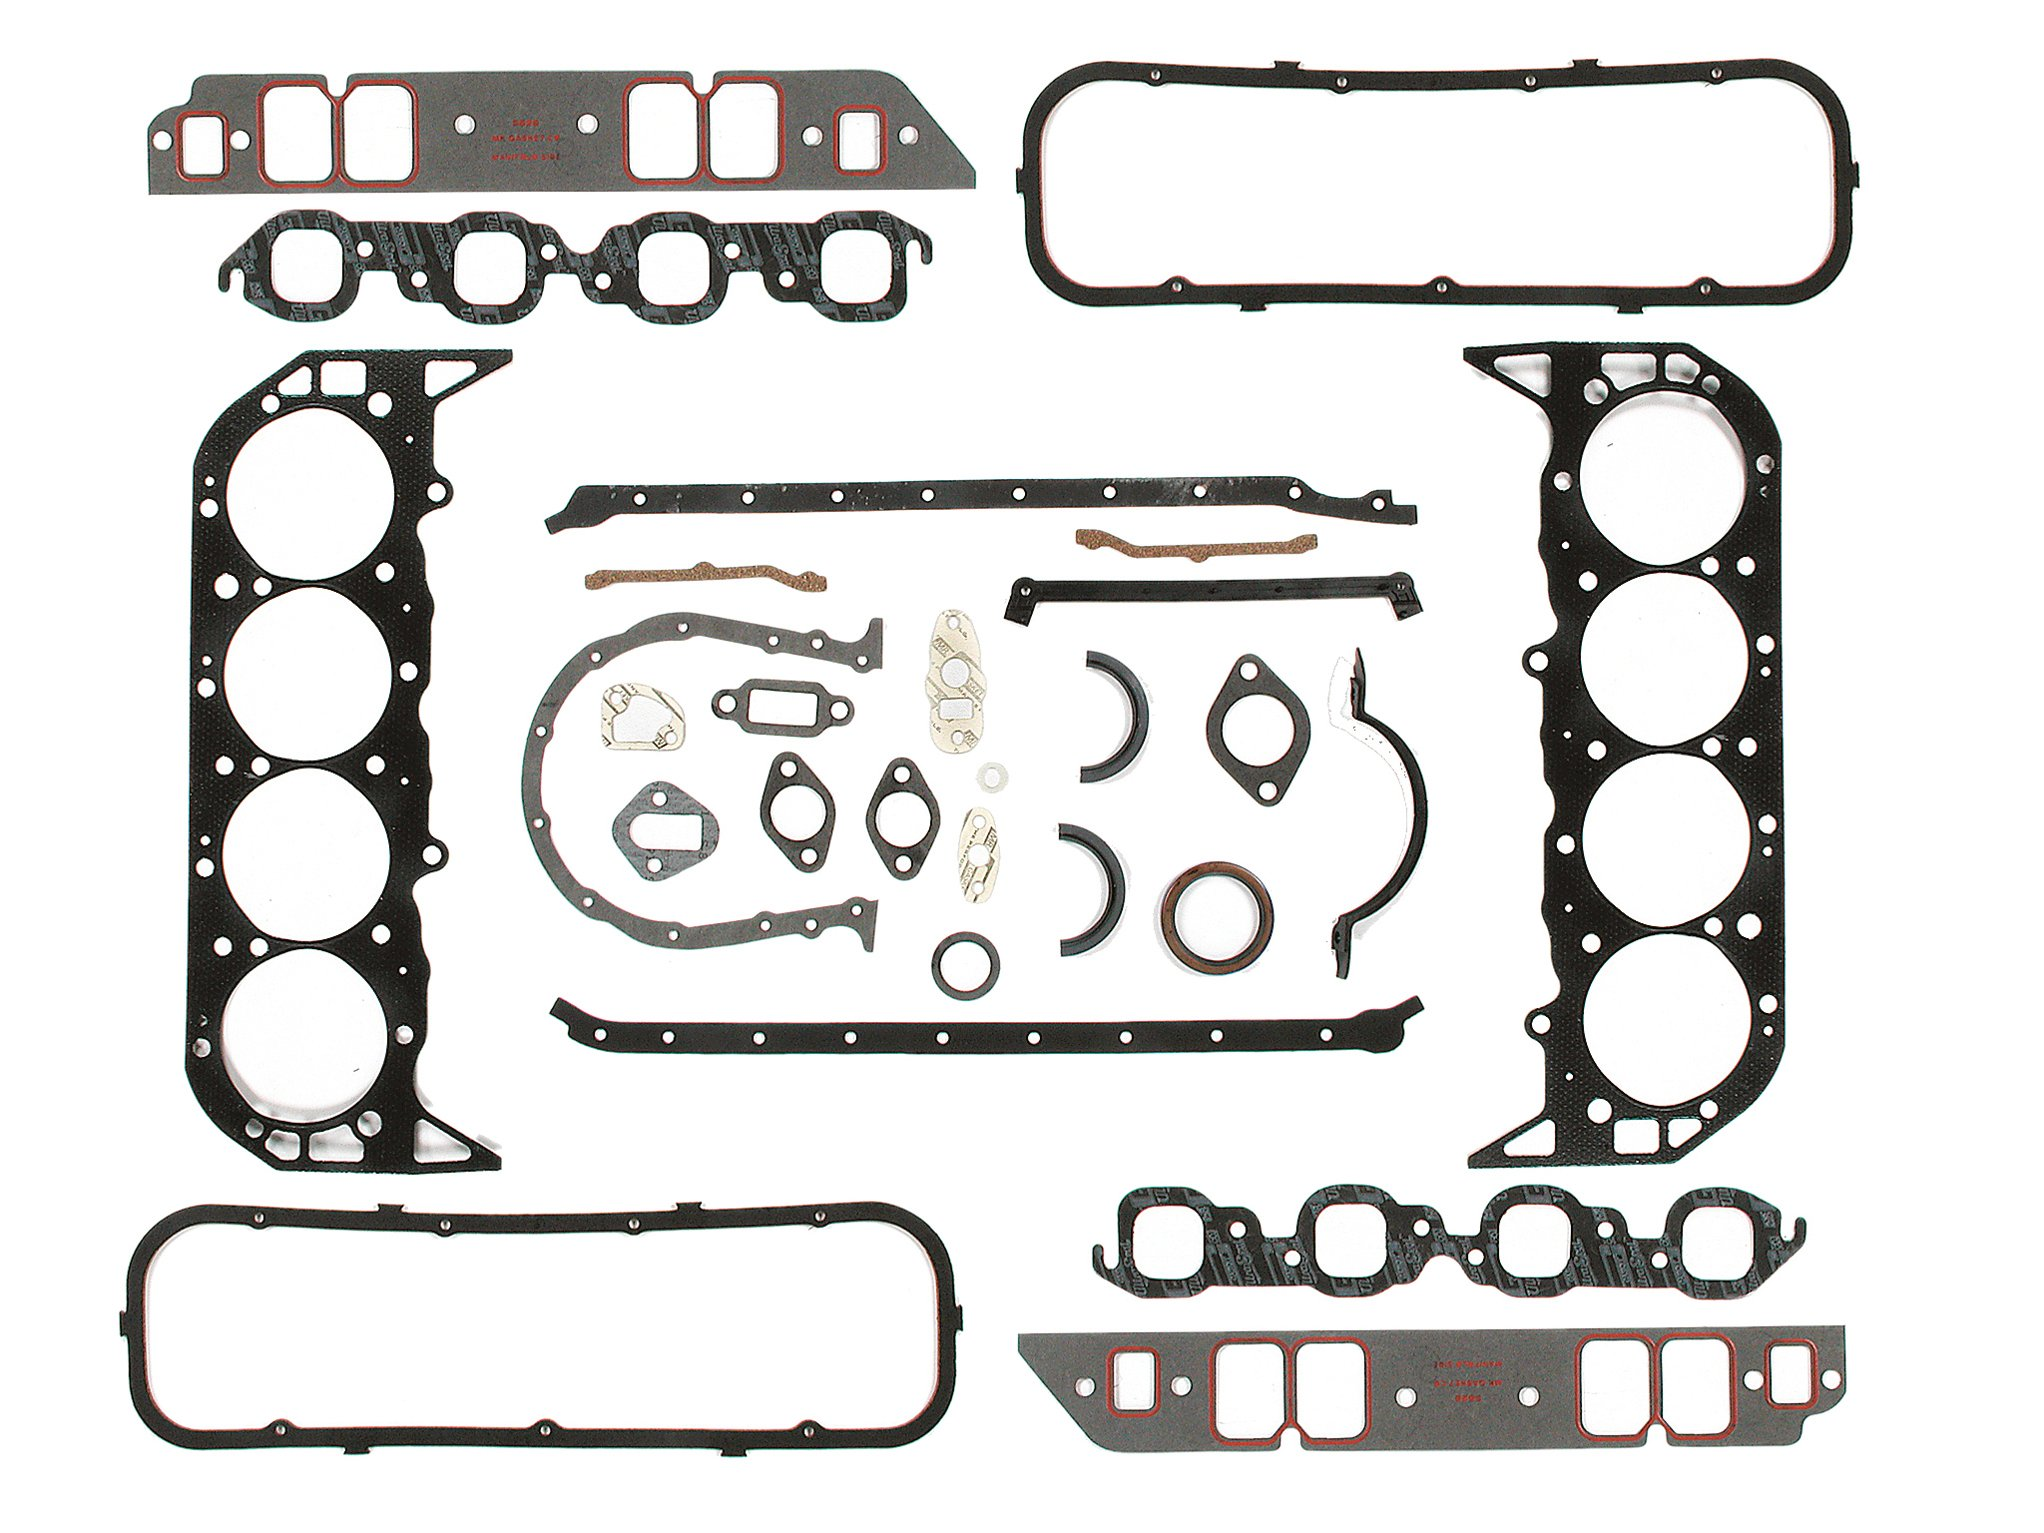 Mr Gasket Mrg Mr Gasket Ultra Seal Overhaul Gasket Kit